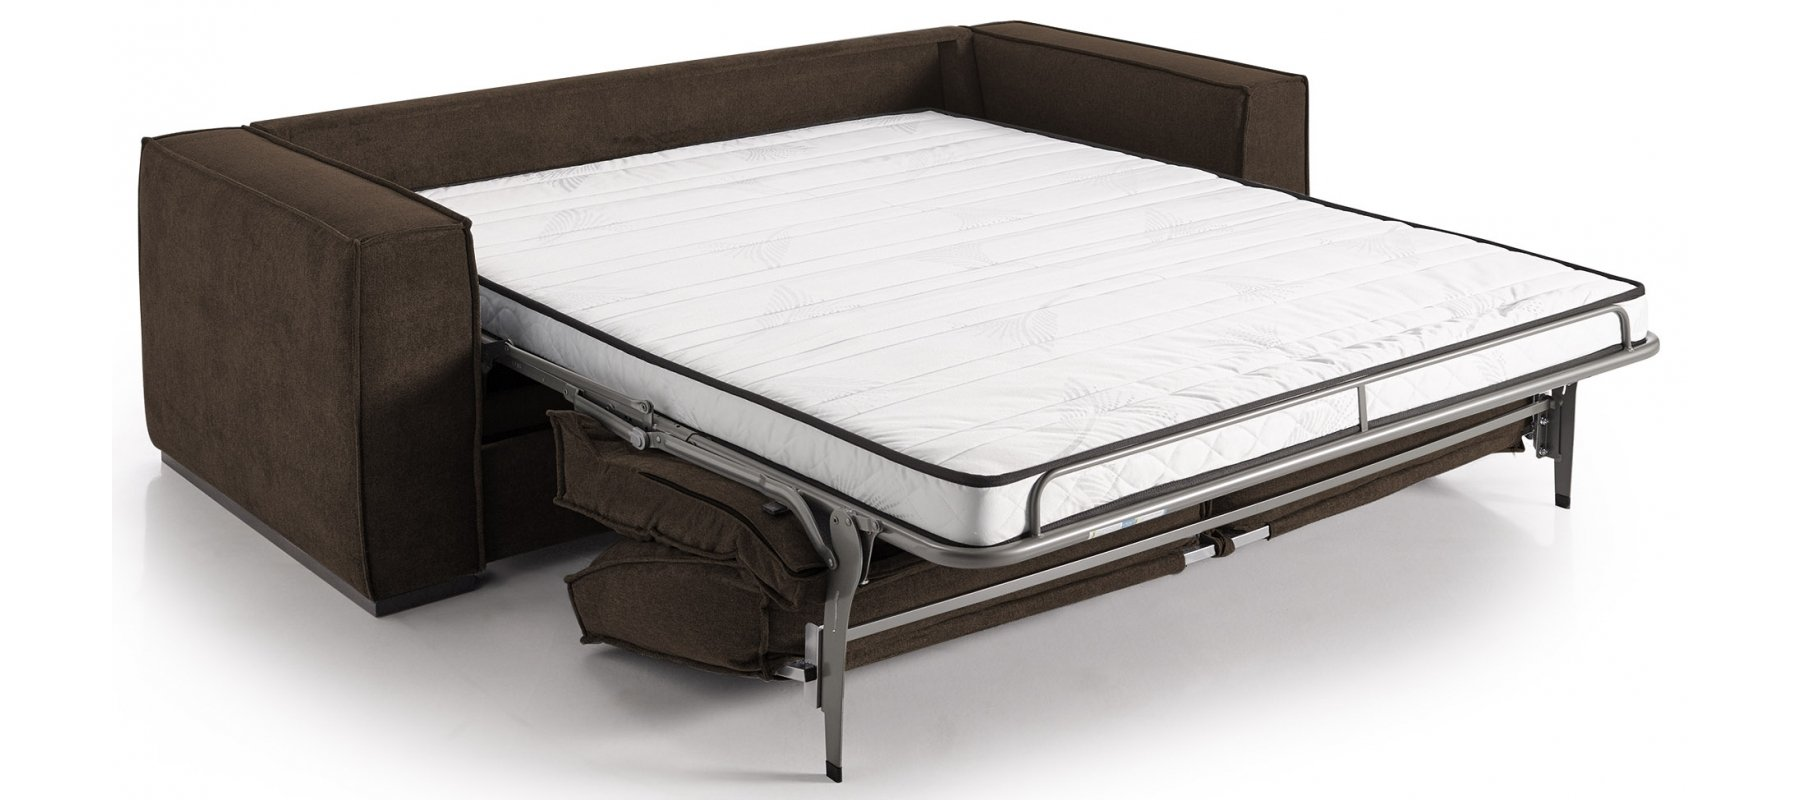 canap convertible contemporain rapido avec vrai matelas et sommier. Black Bedroom Furniture Sets. Home Design Ideas